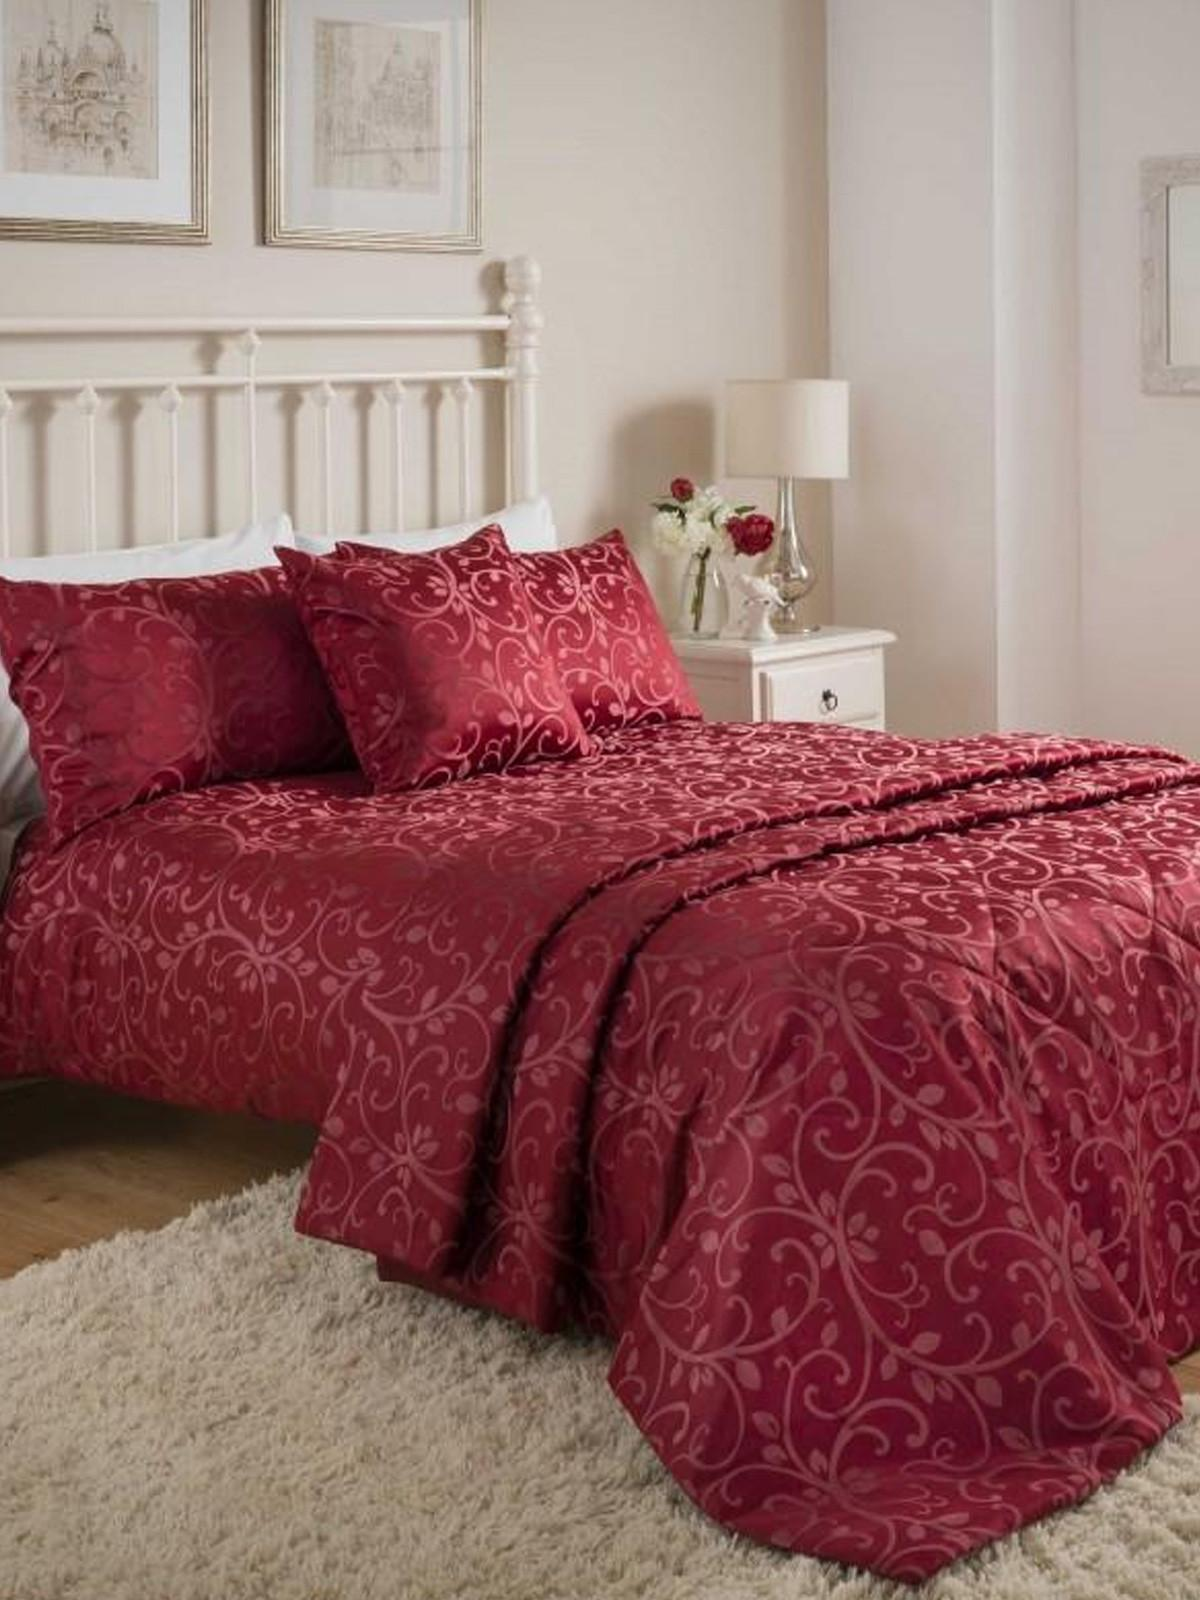 Swirl Jacquard Bedding Collection Red Ponden Home